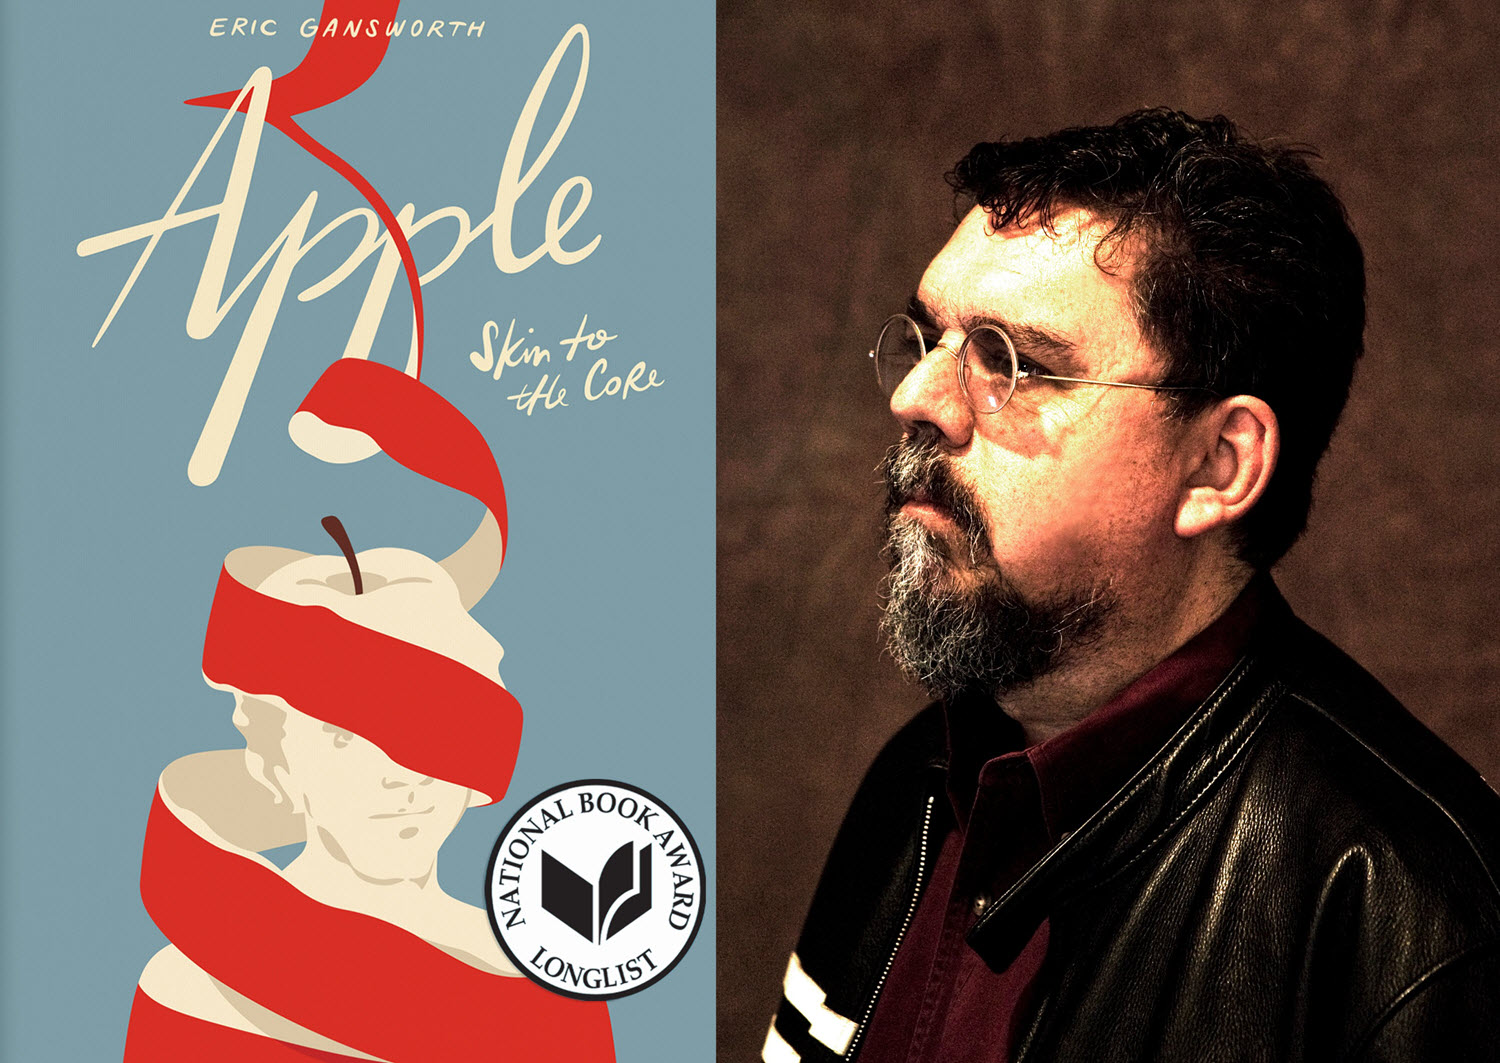 Image of Apple (Skin to the Core) cover by Eric Gansworth / Photo of Gansworth by dellas